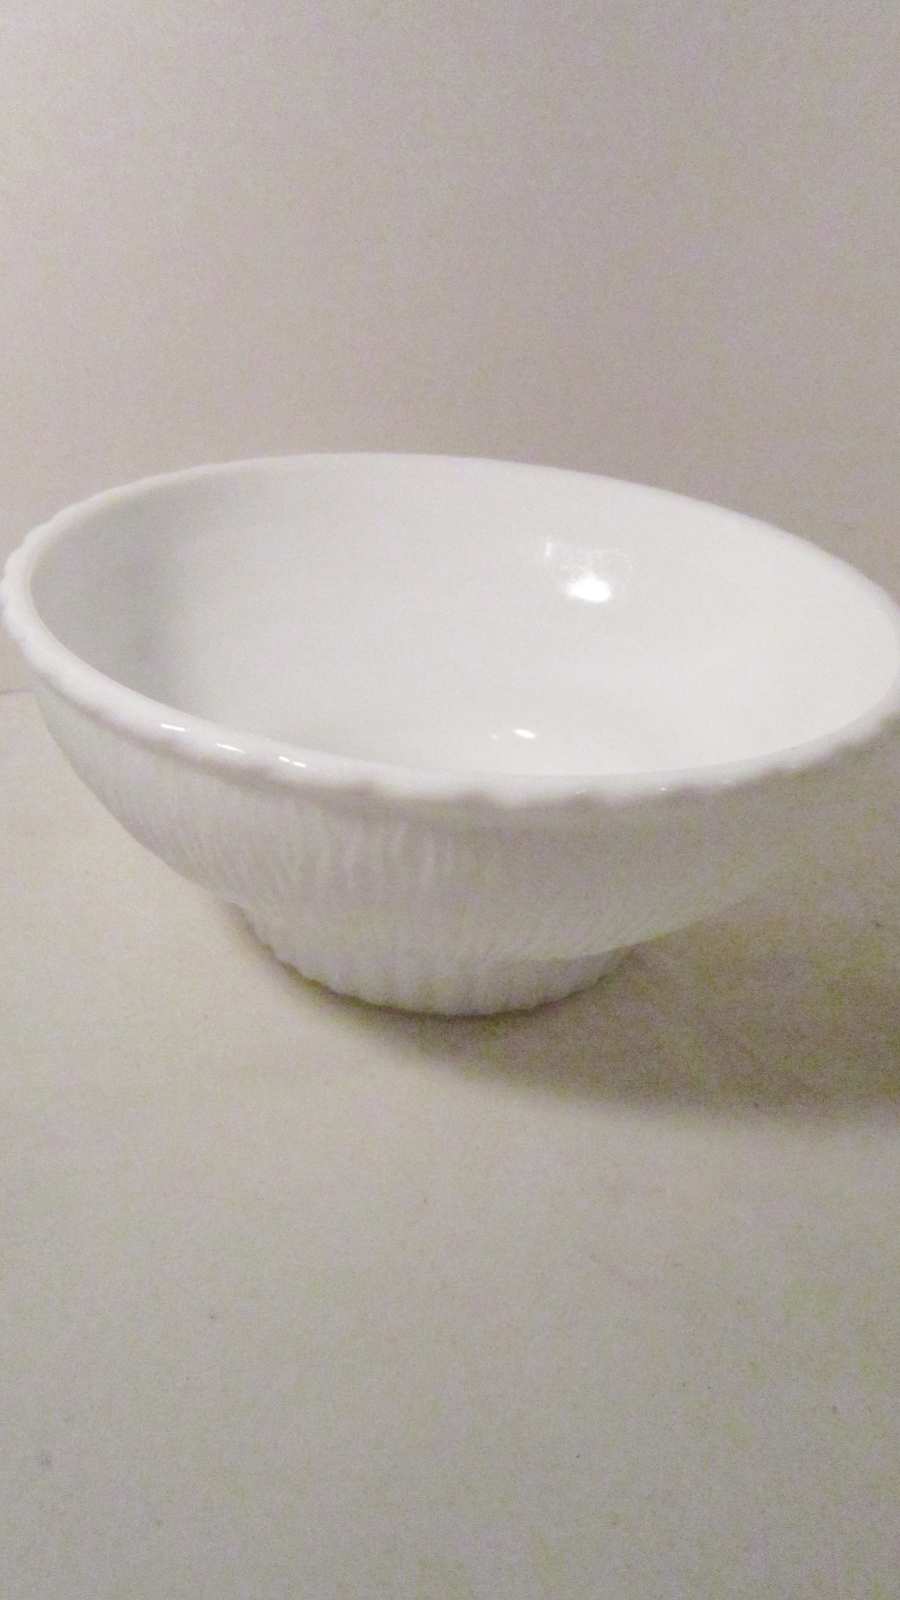 Primary image for Milk Glass Footed Vase 1975 marked F.T.D. White Bowl shape